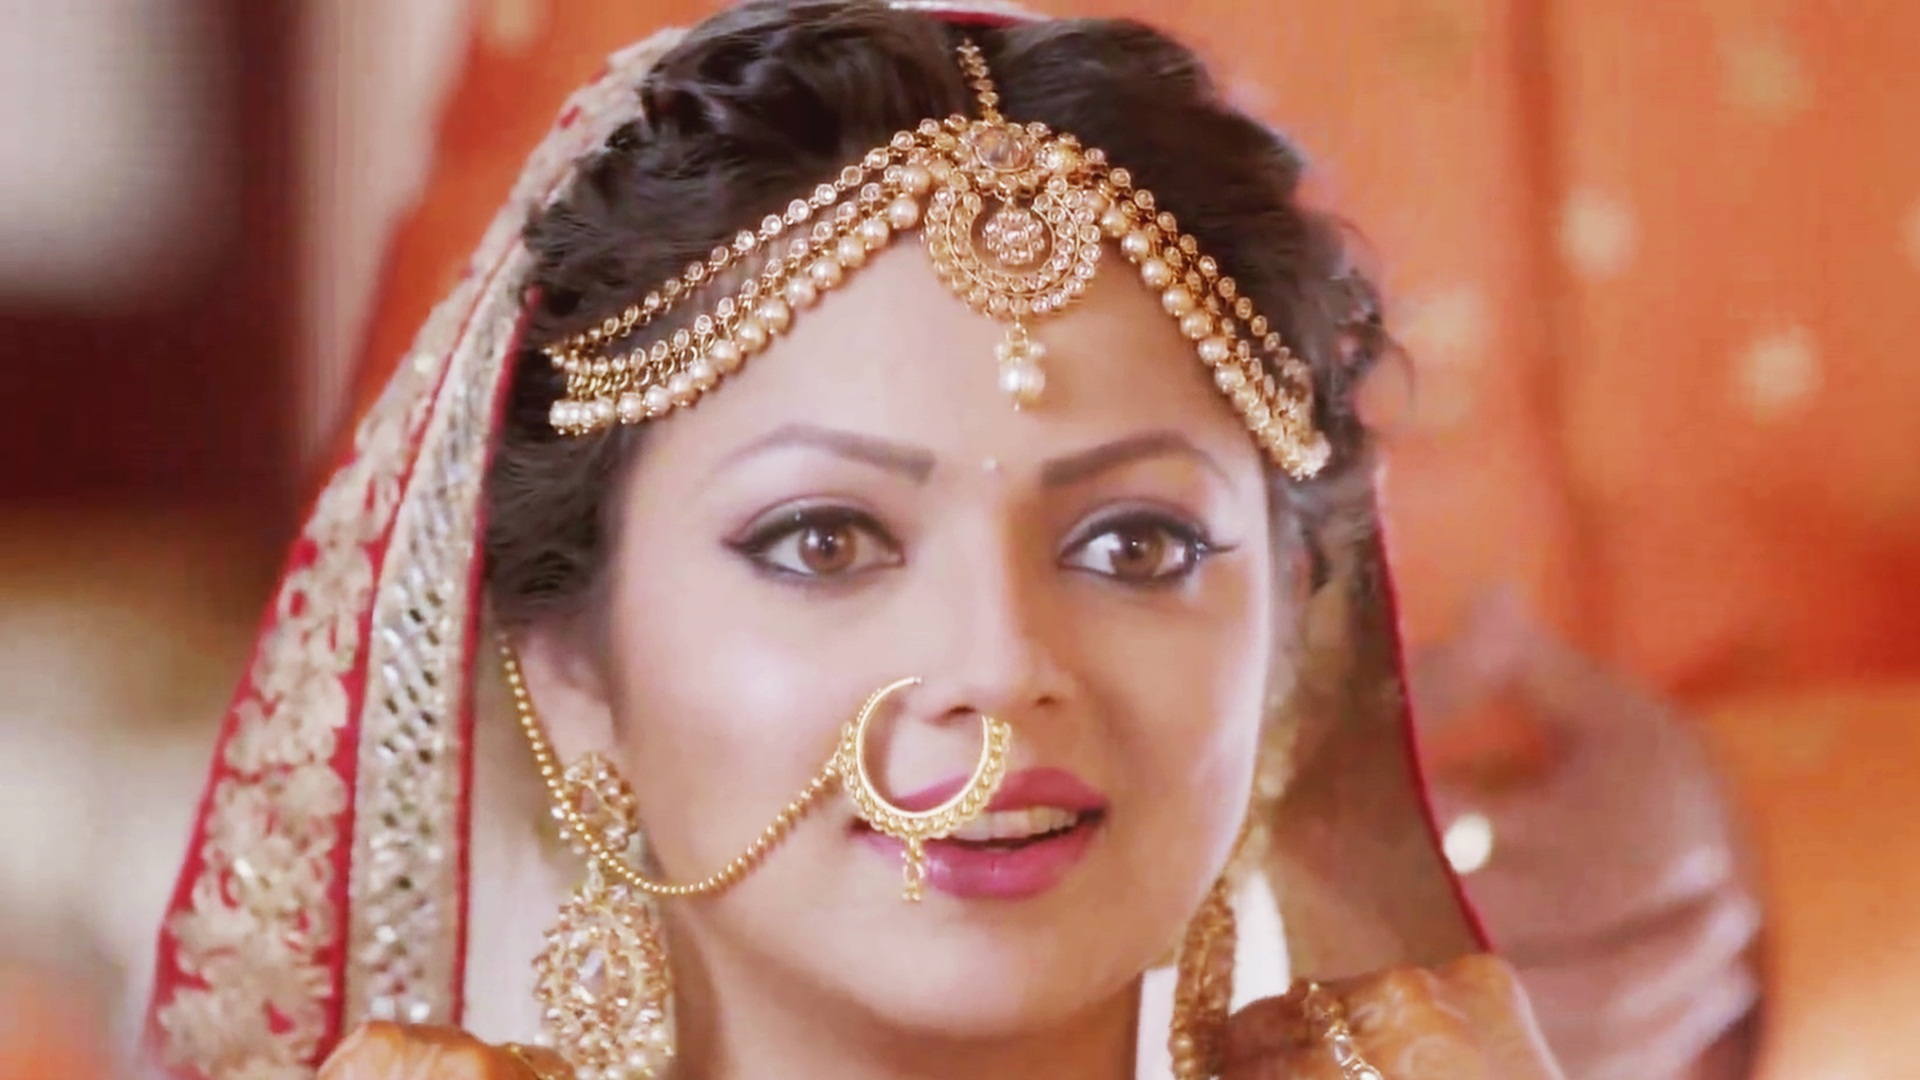 Beautiful Drashti Dhami Stylish Face Deskop Free Mobile Pictures Hd Background